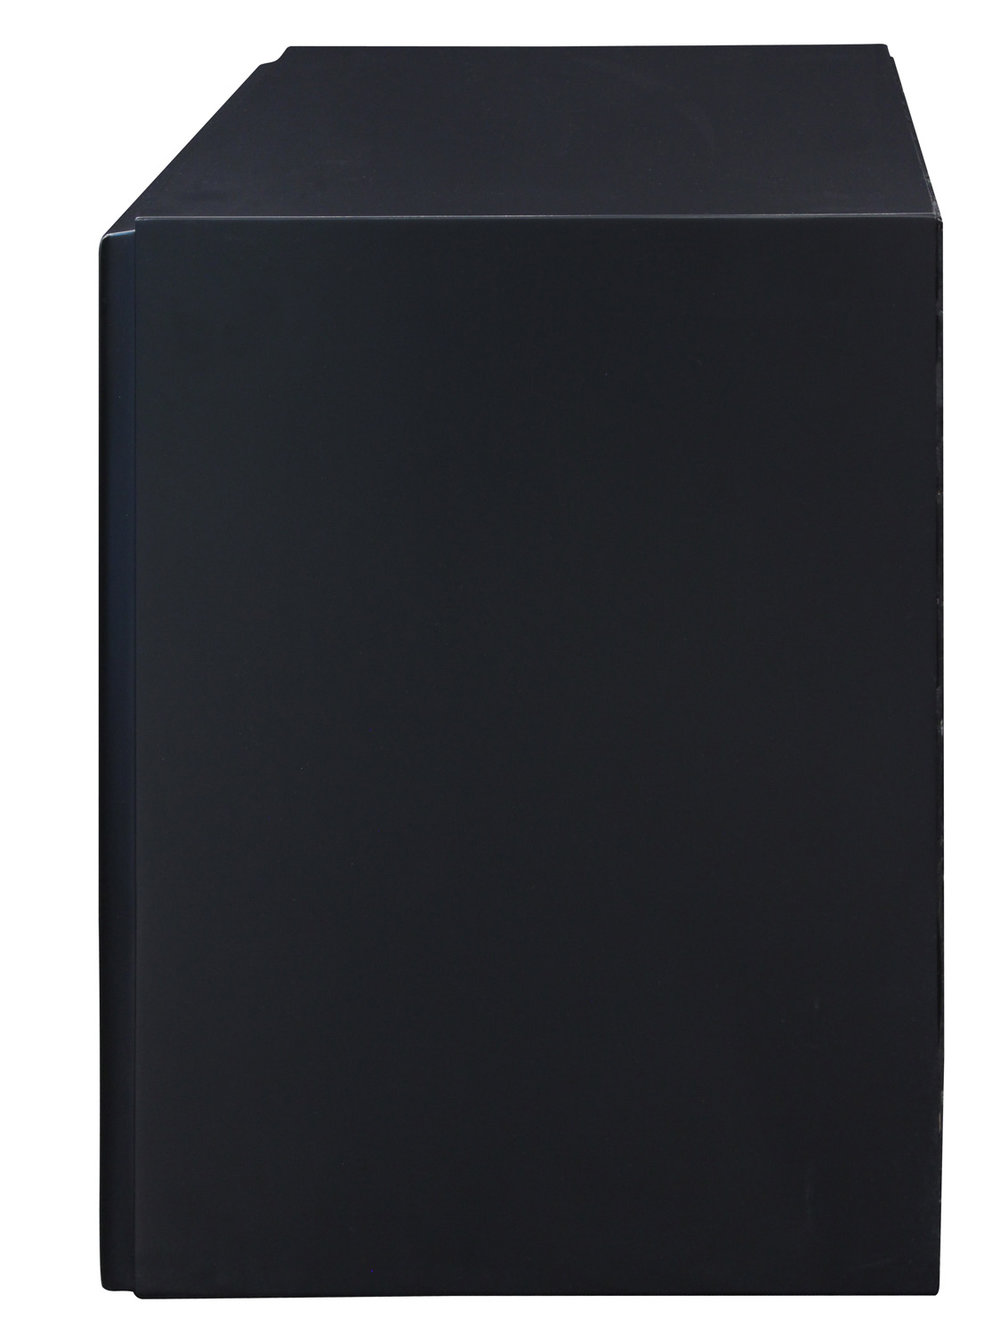 Frankl 95 Blk Satin nightstands70 detail4 hires.jpg